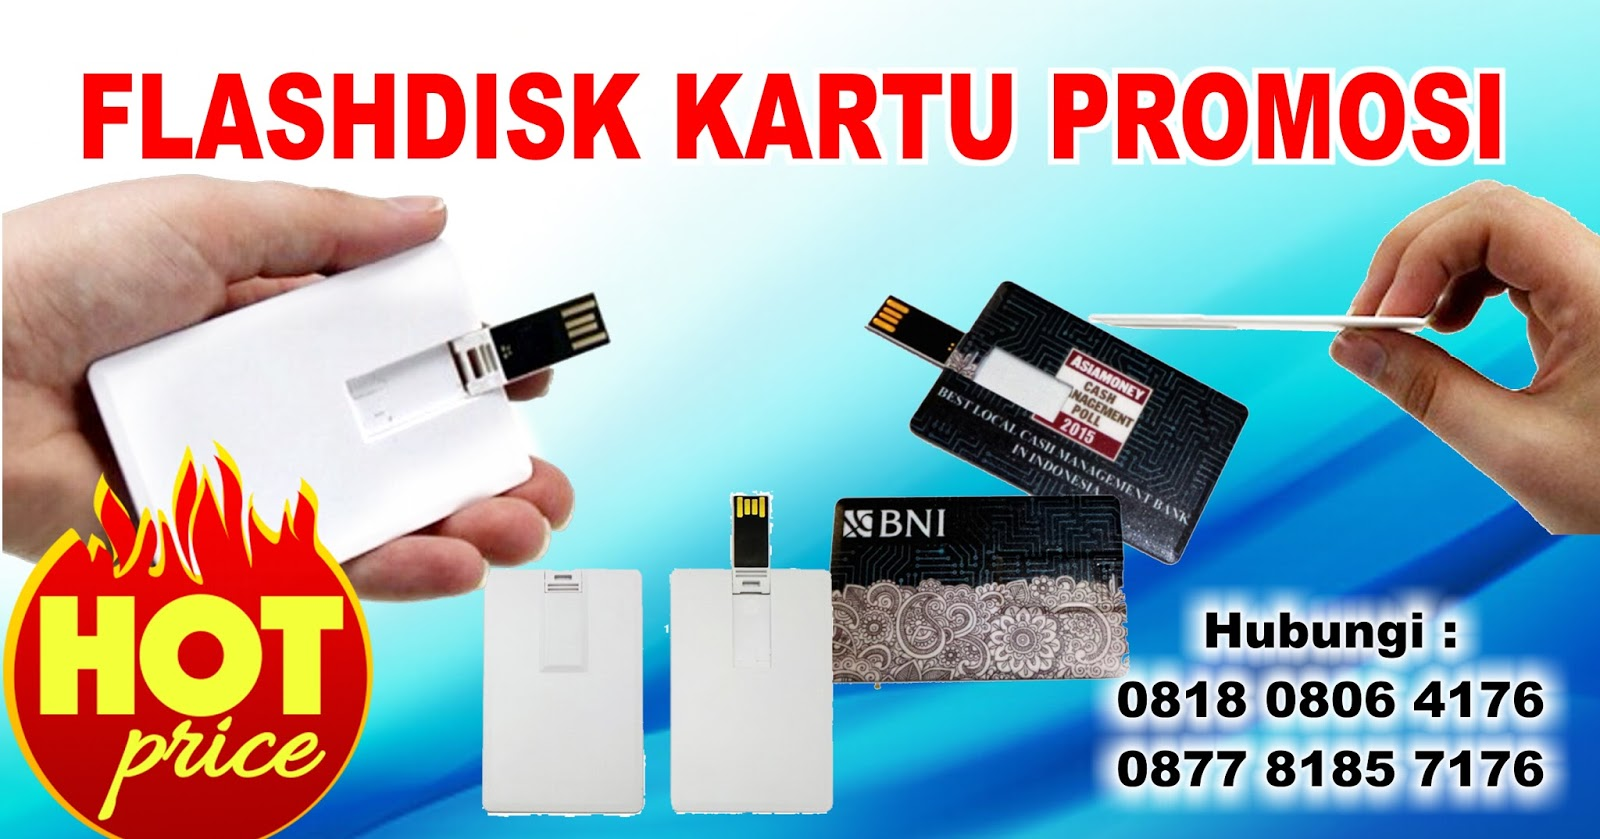 https://res.cloudinary.com/daydapk4h/image/upload/v1516353466/jual-flashdisk-promosi_olfiwd.jpg